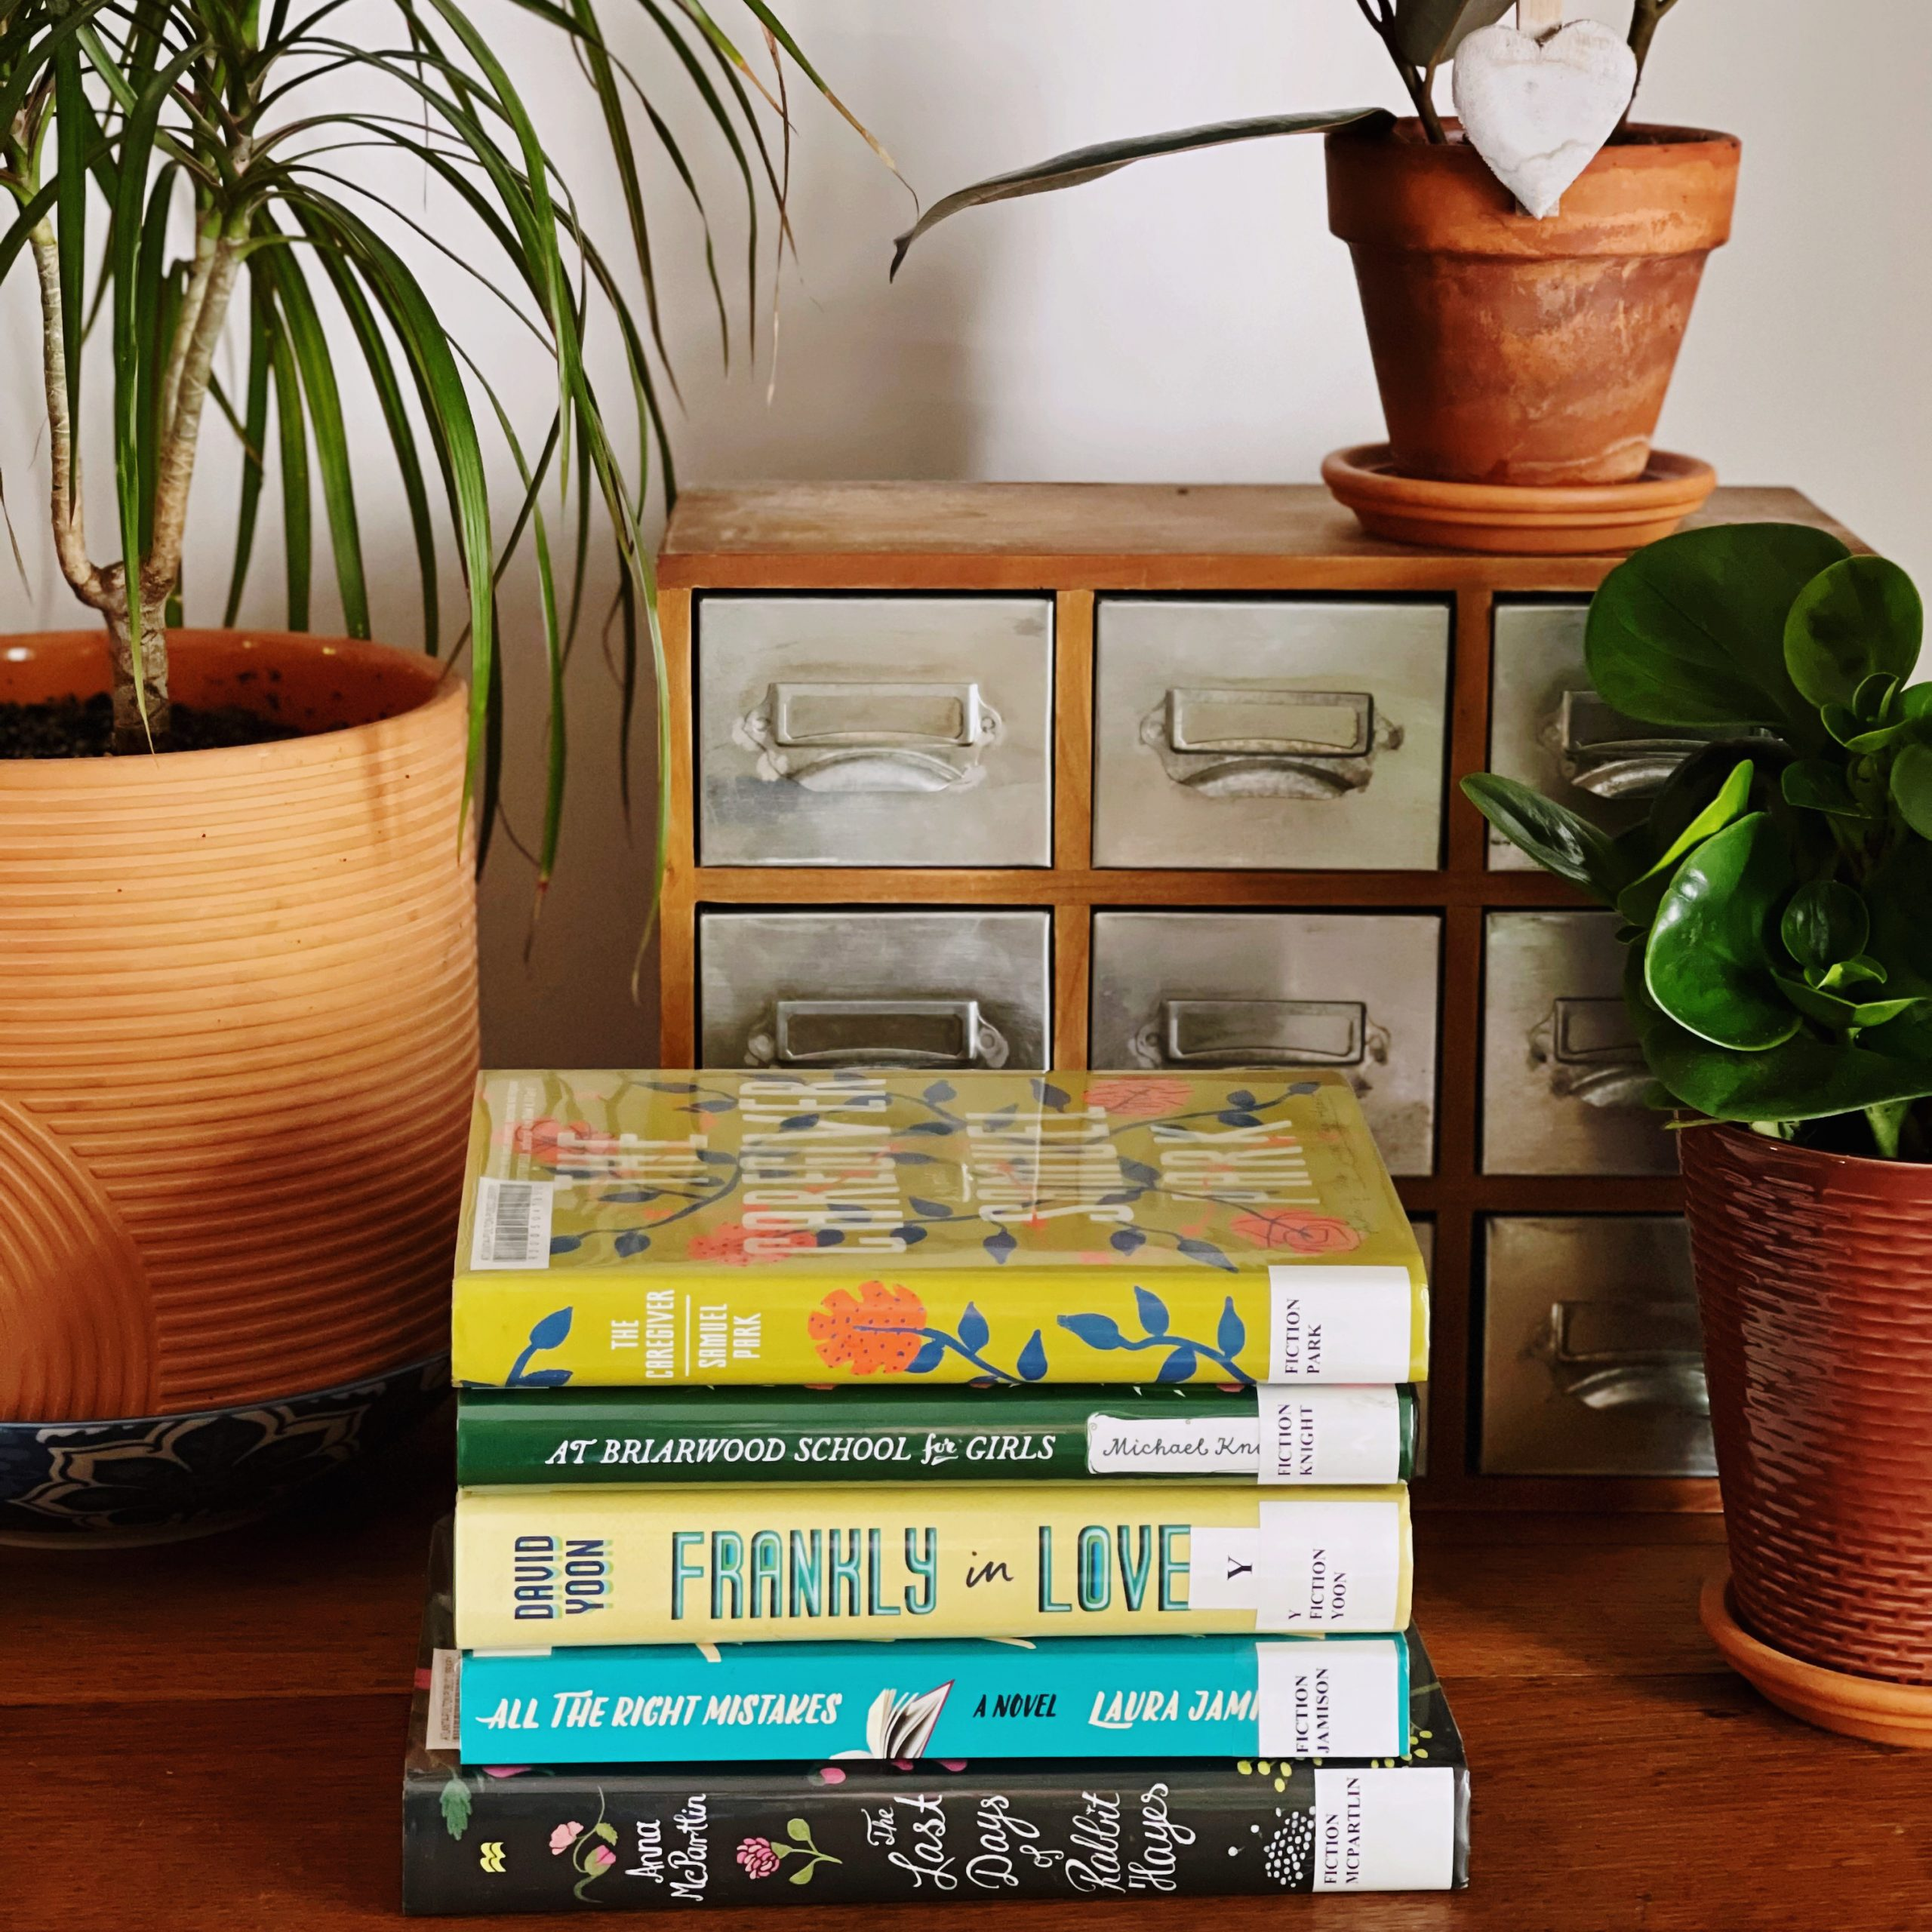 A stack of books to read this year on an end table with plants and card catalog